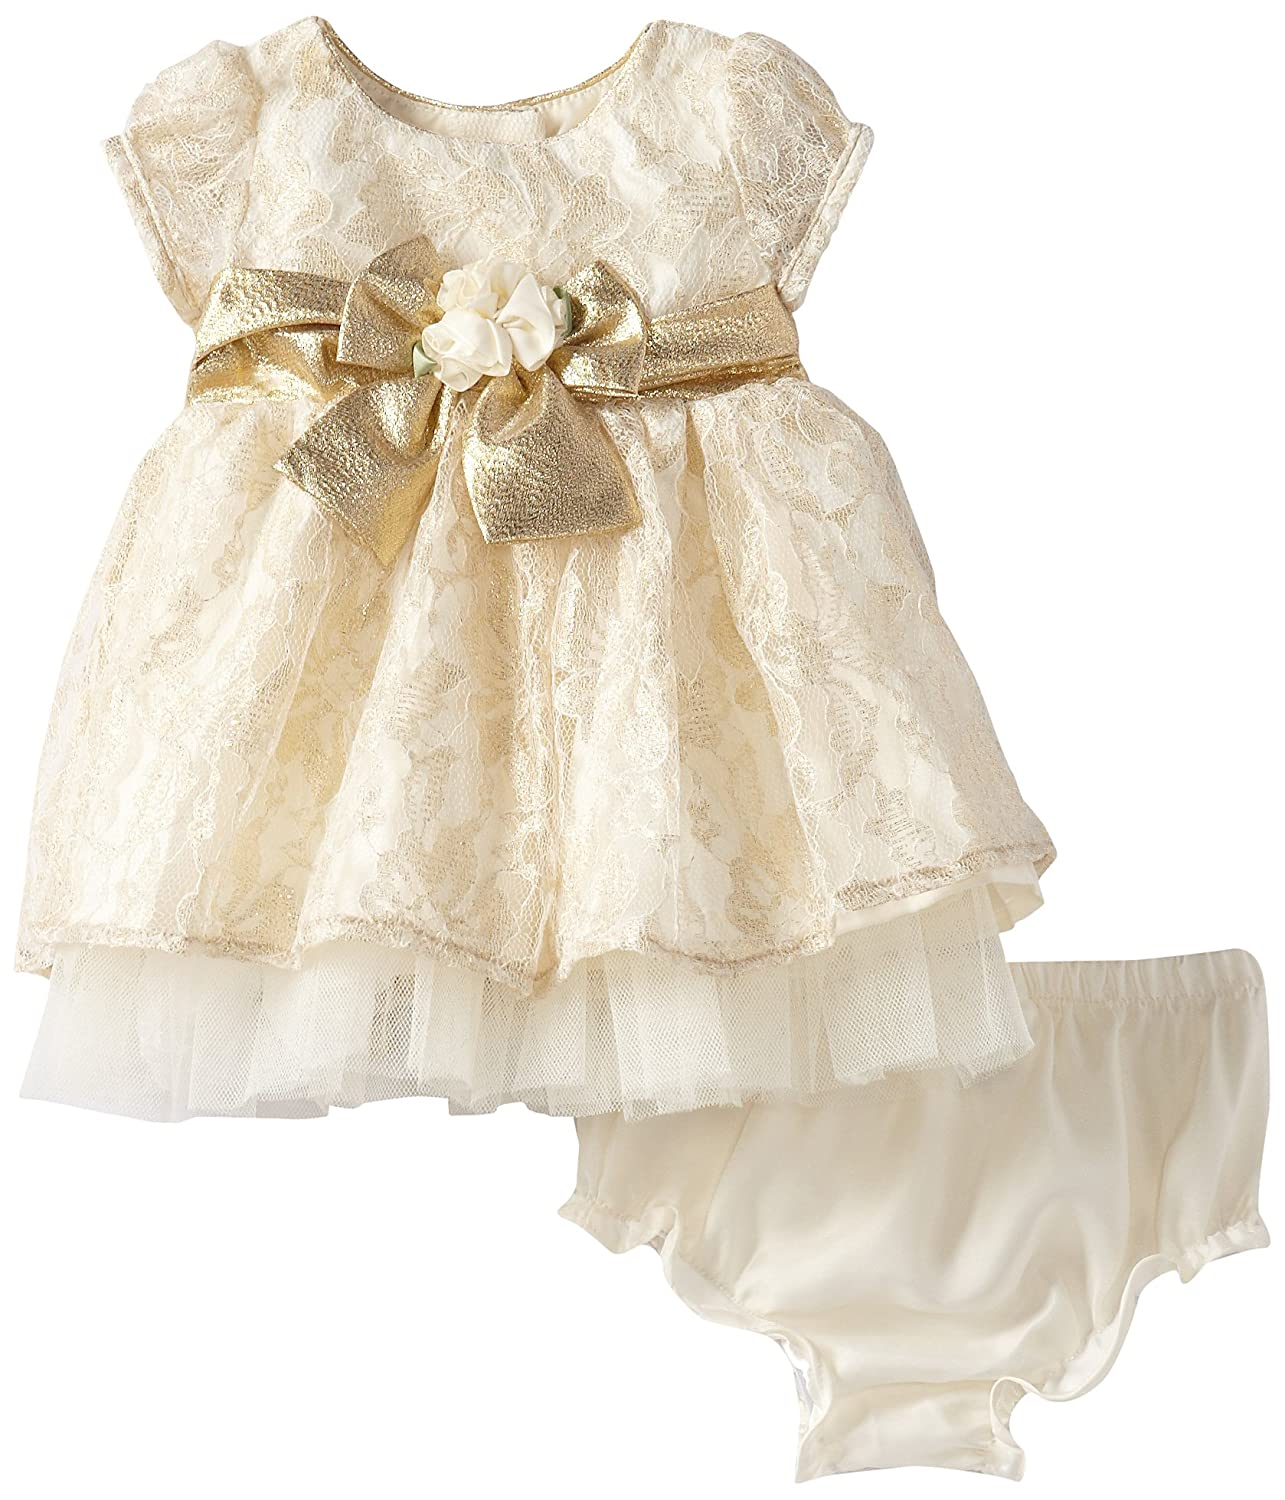 Youngland Baby-Girls Newborn Lace Dress with Bow and Matching Panty